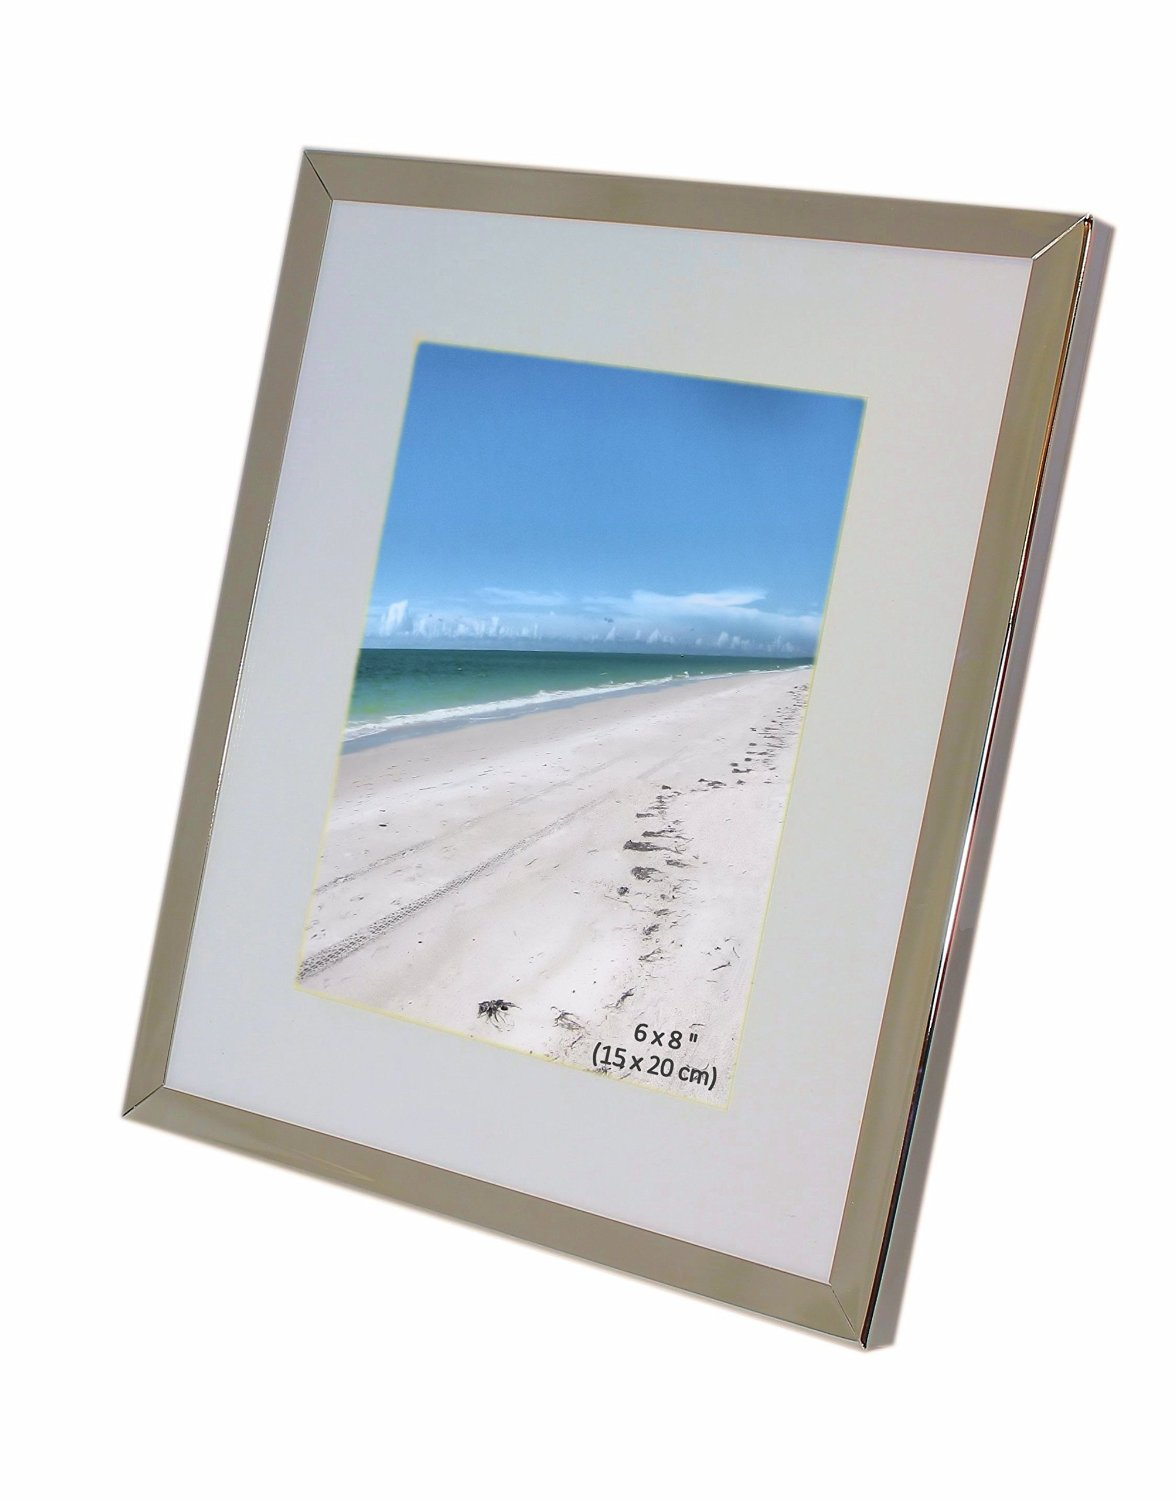 Cheap frame 20 x 8 find frame 20 x 8 deals on line at alibaba iron nickel plated shiny dark silver color photo frame with removable mount takes a photo jeuxipadfo Image collections